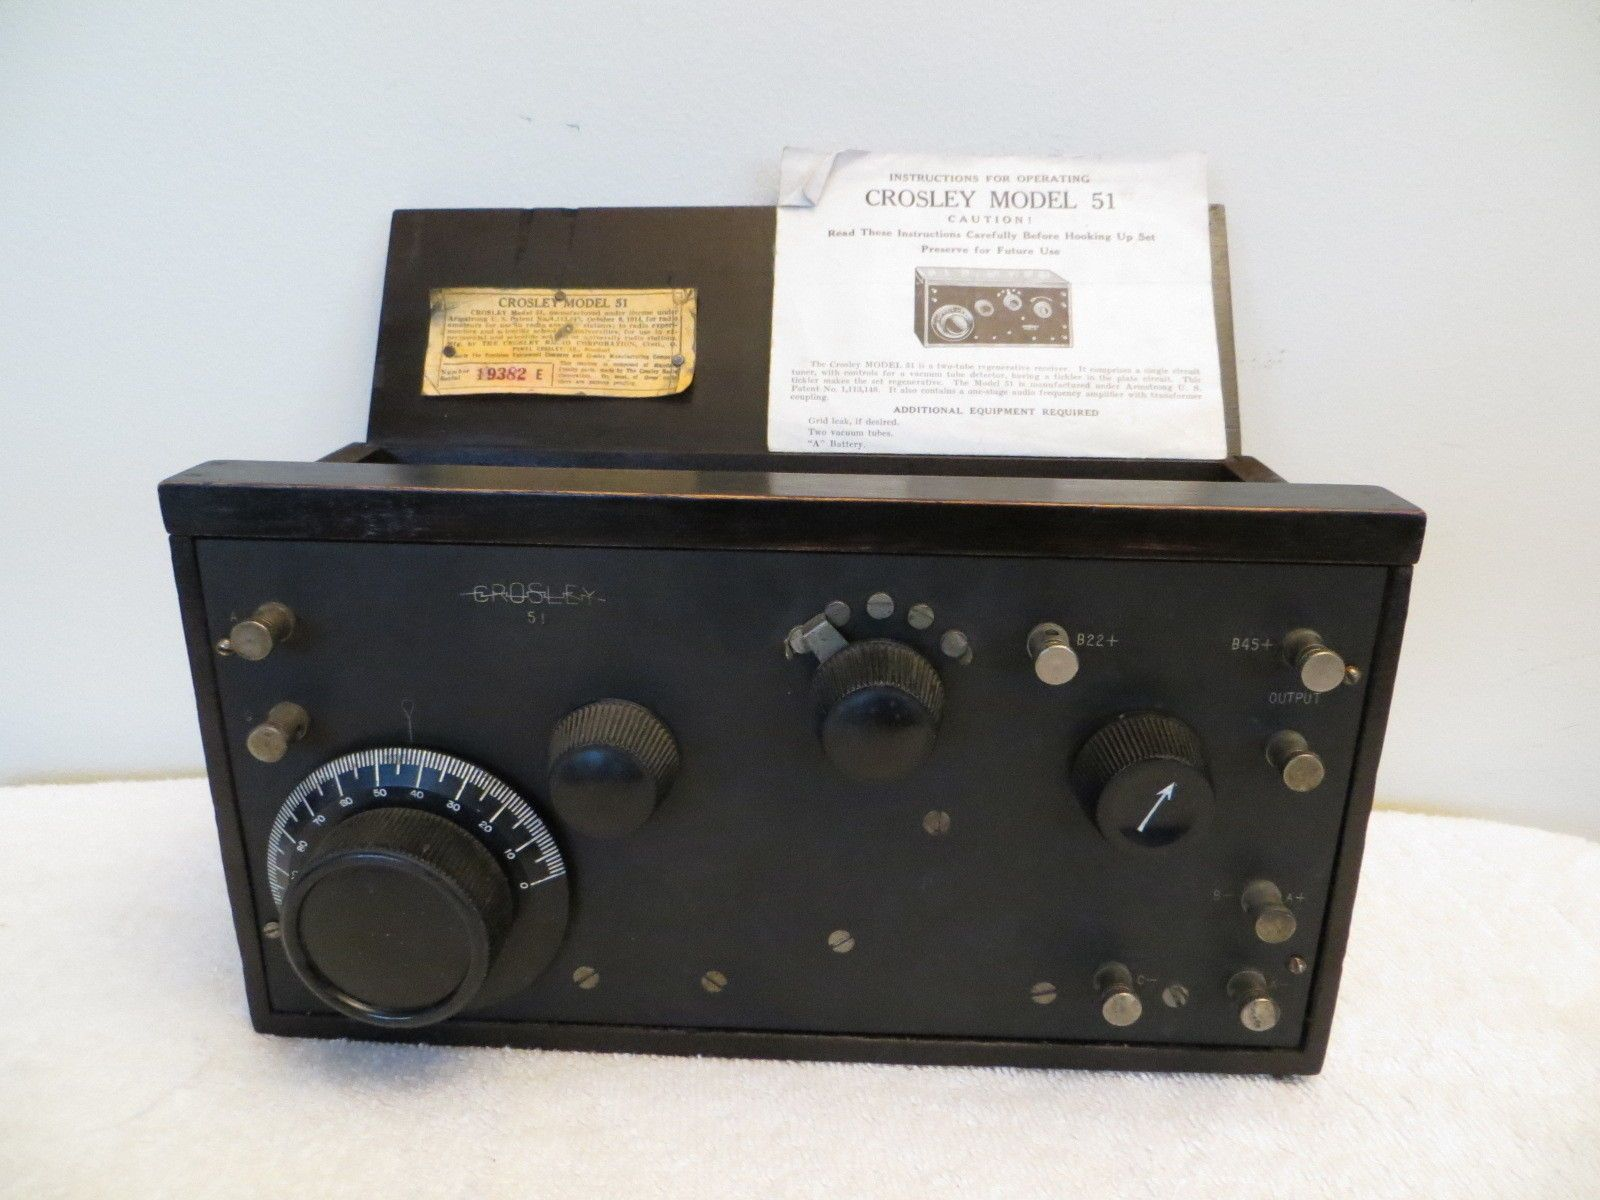 S HISTORICAL CROSLEY OLD MARCONI ERA PRE DEPRESSION RADIO eBay